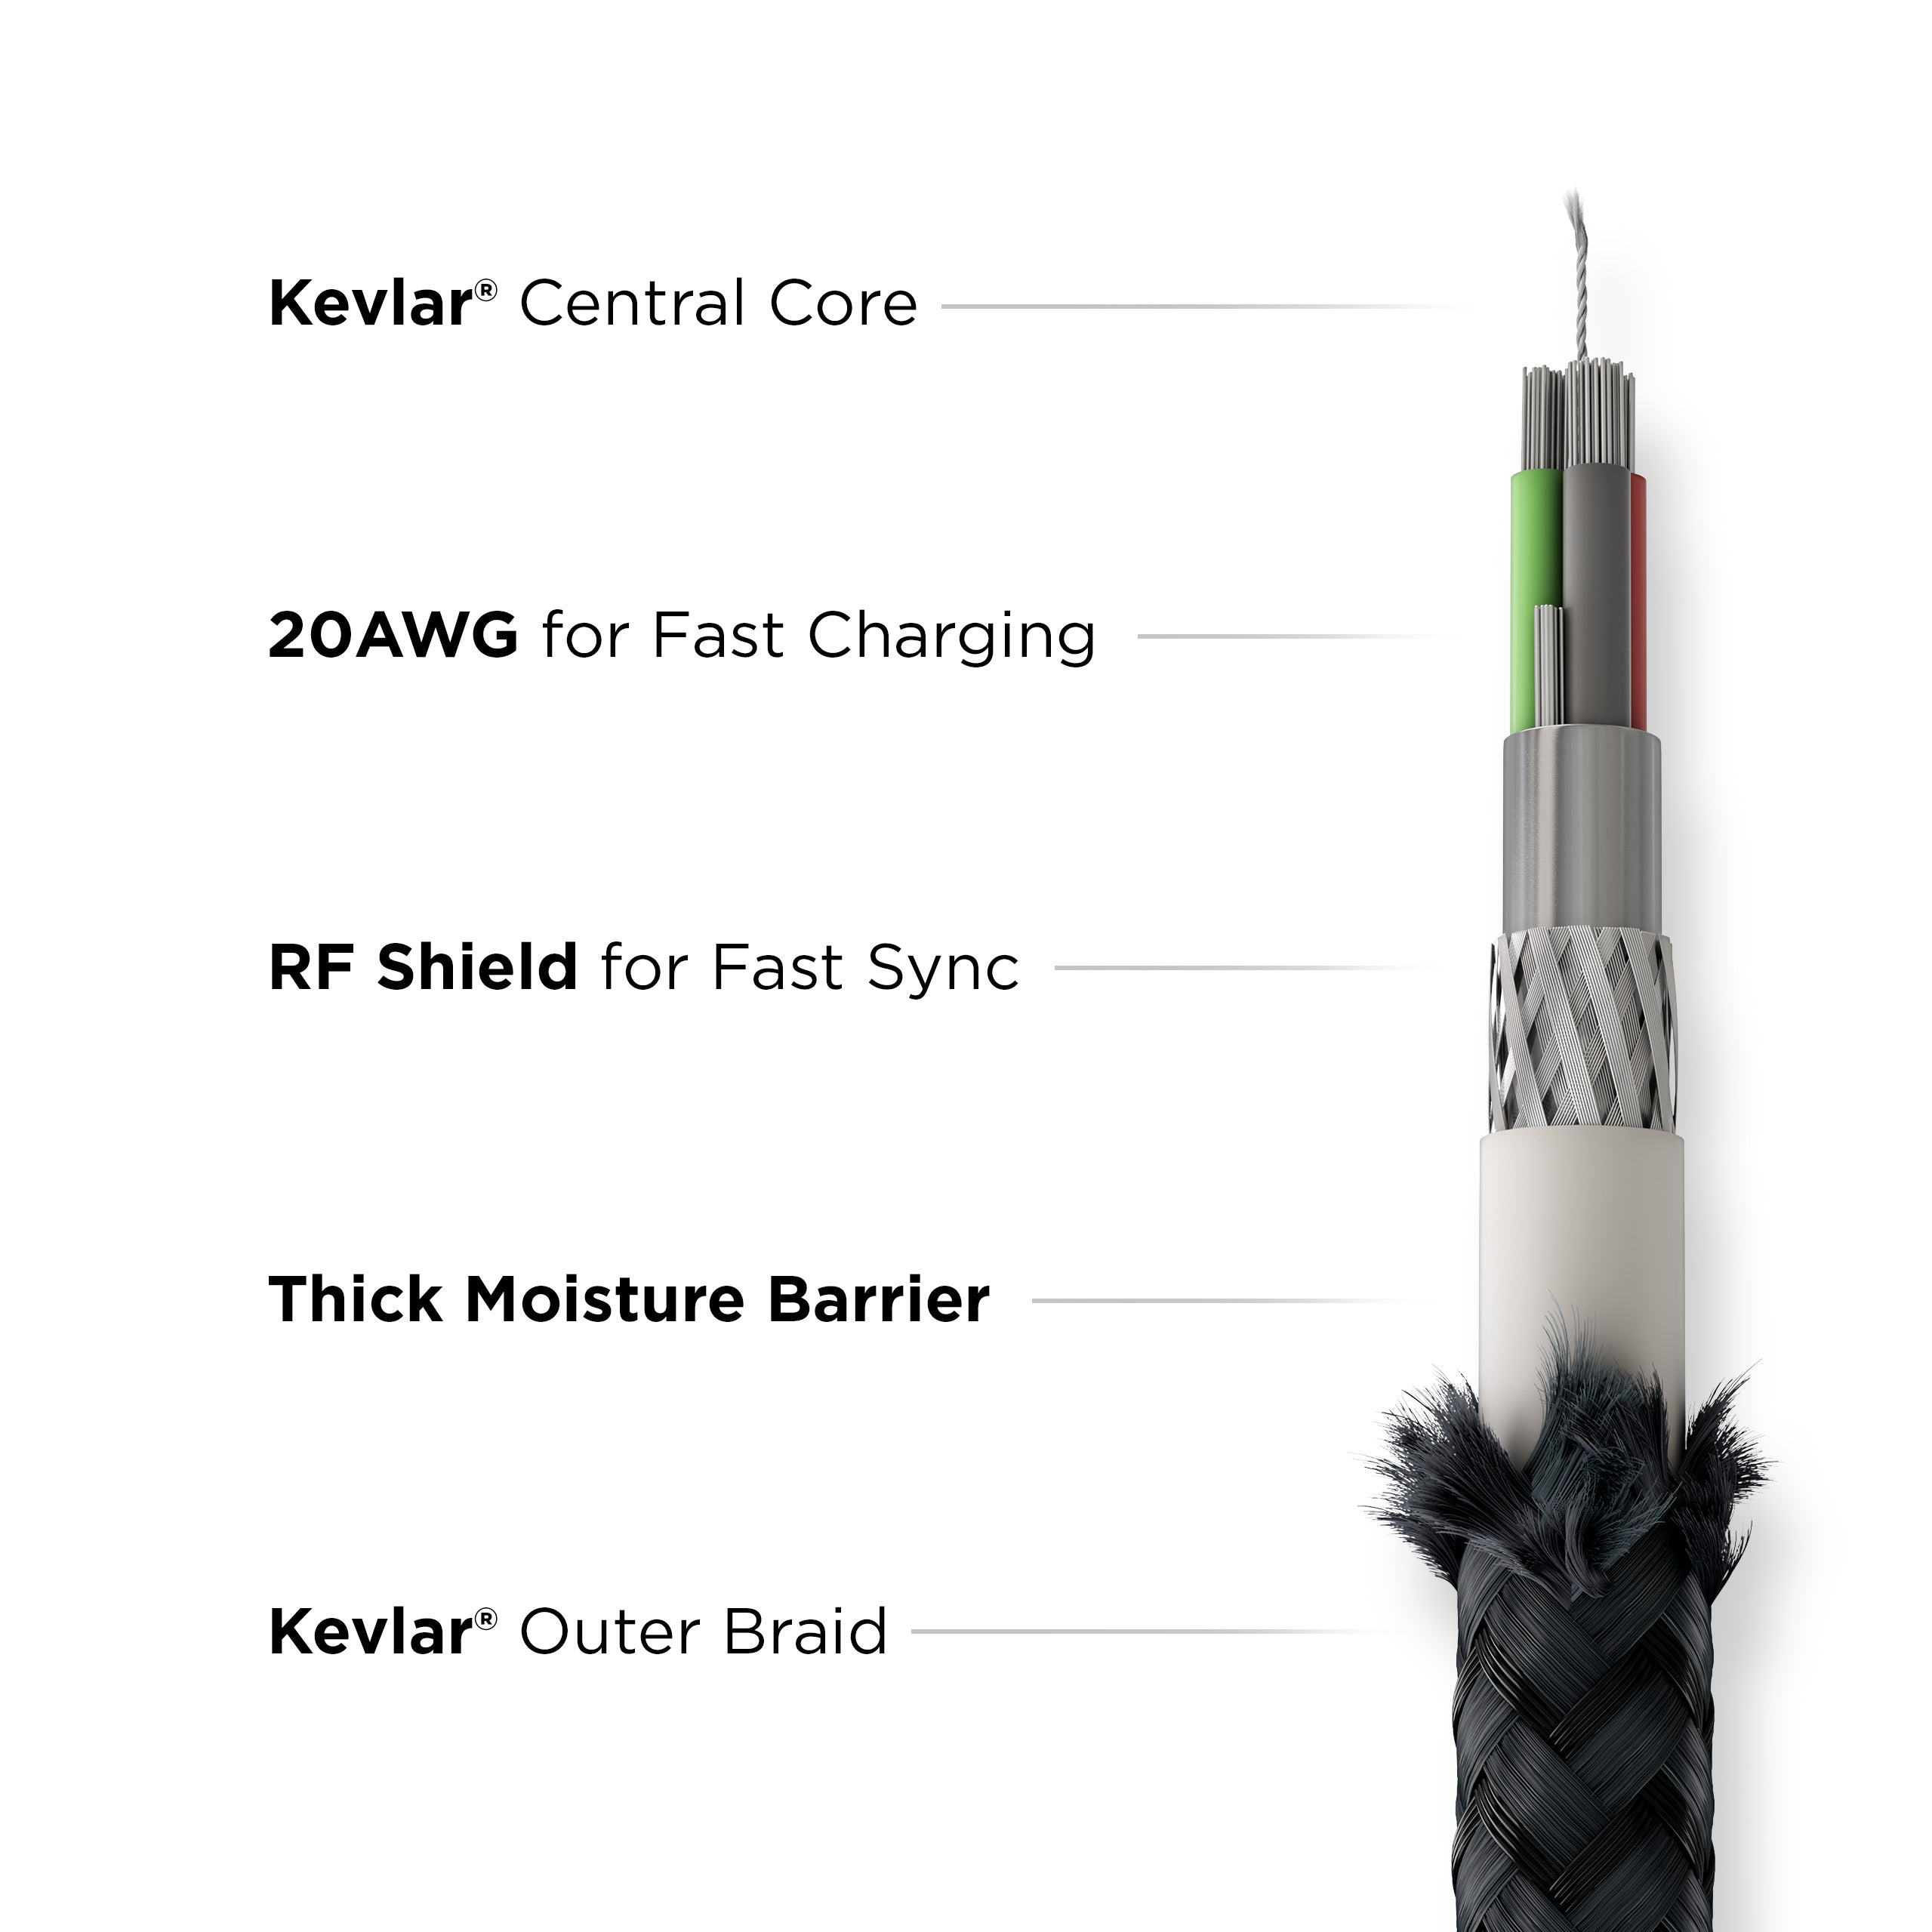 Lightning Cable with Kevlar, 3.0 metres